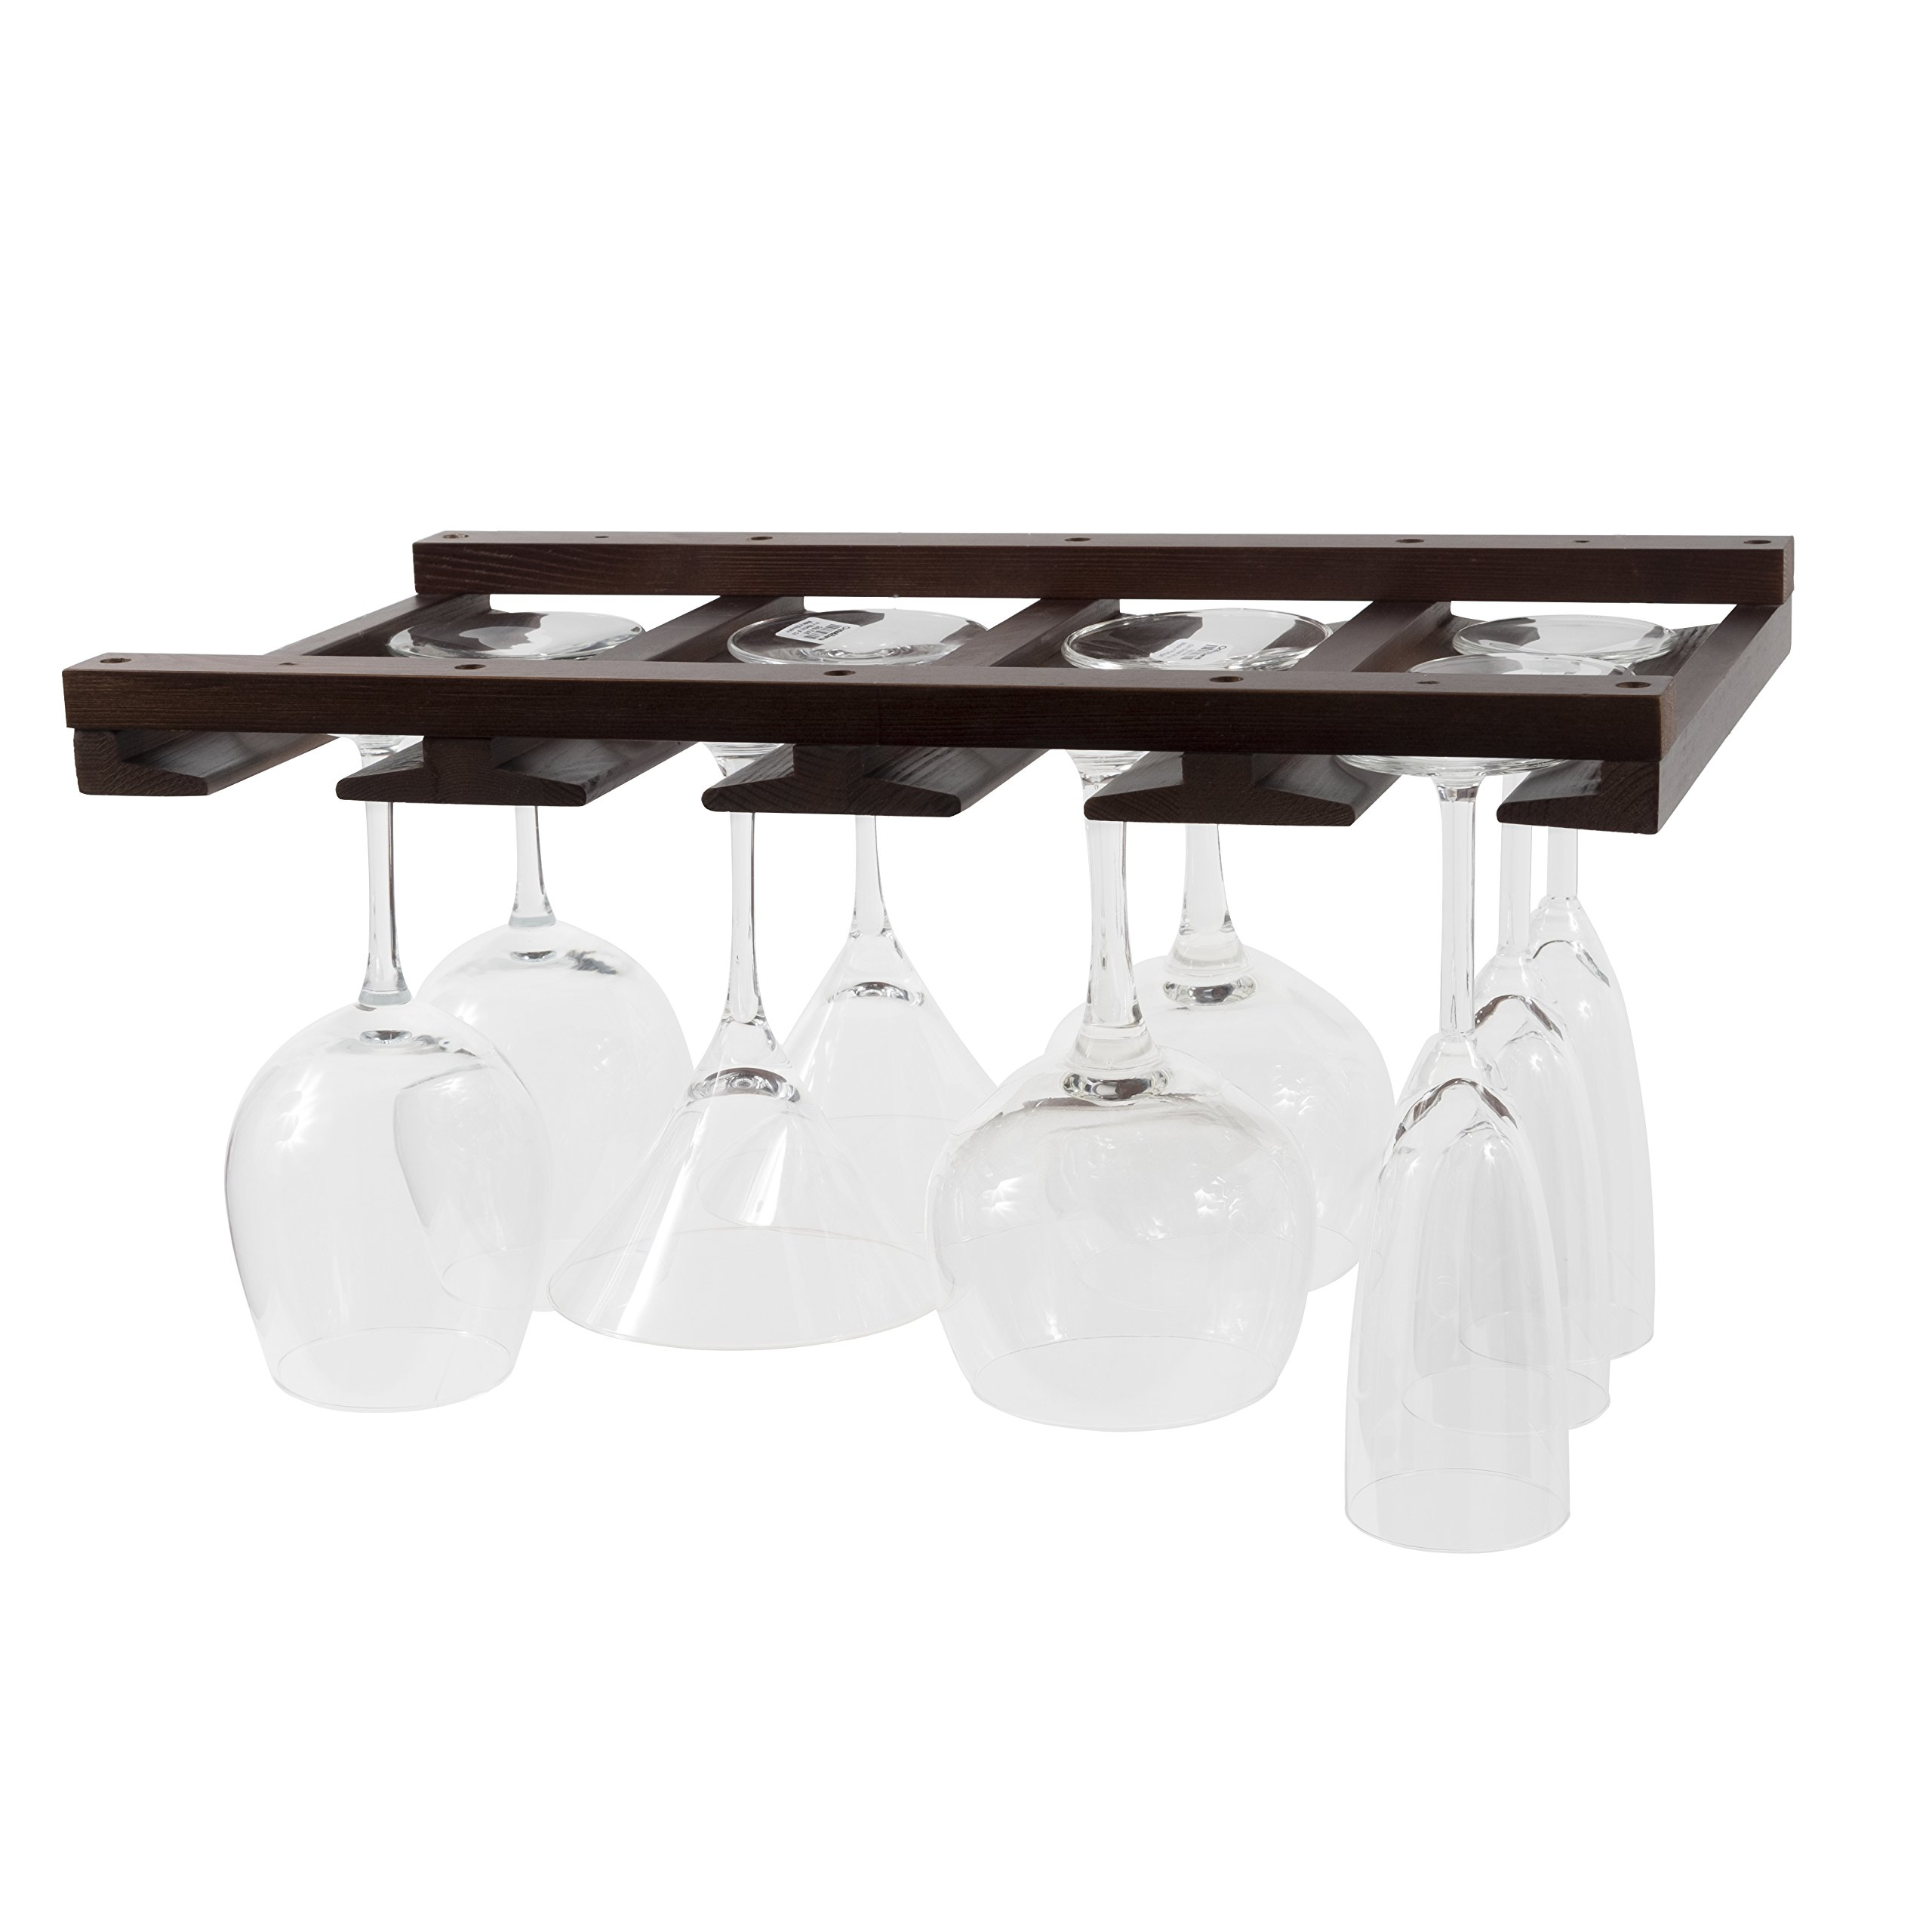 Artifact Design Wine Glass Rack Makes Dull Kitchens or Bar Looks Great Perfectly Fits 6-12 Glasses Under Cabinet Easy to Install with Included Screws Great Hanging Bar Glass Rack (Chestnut Stained)